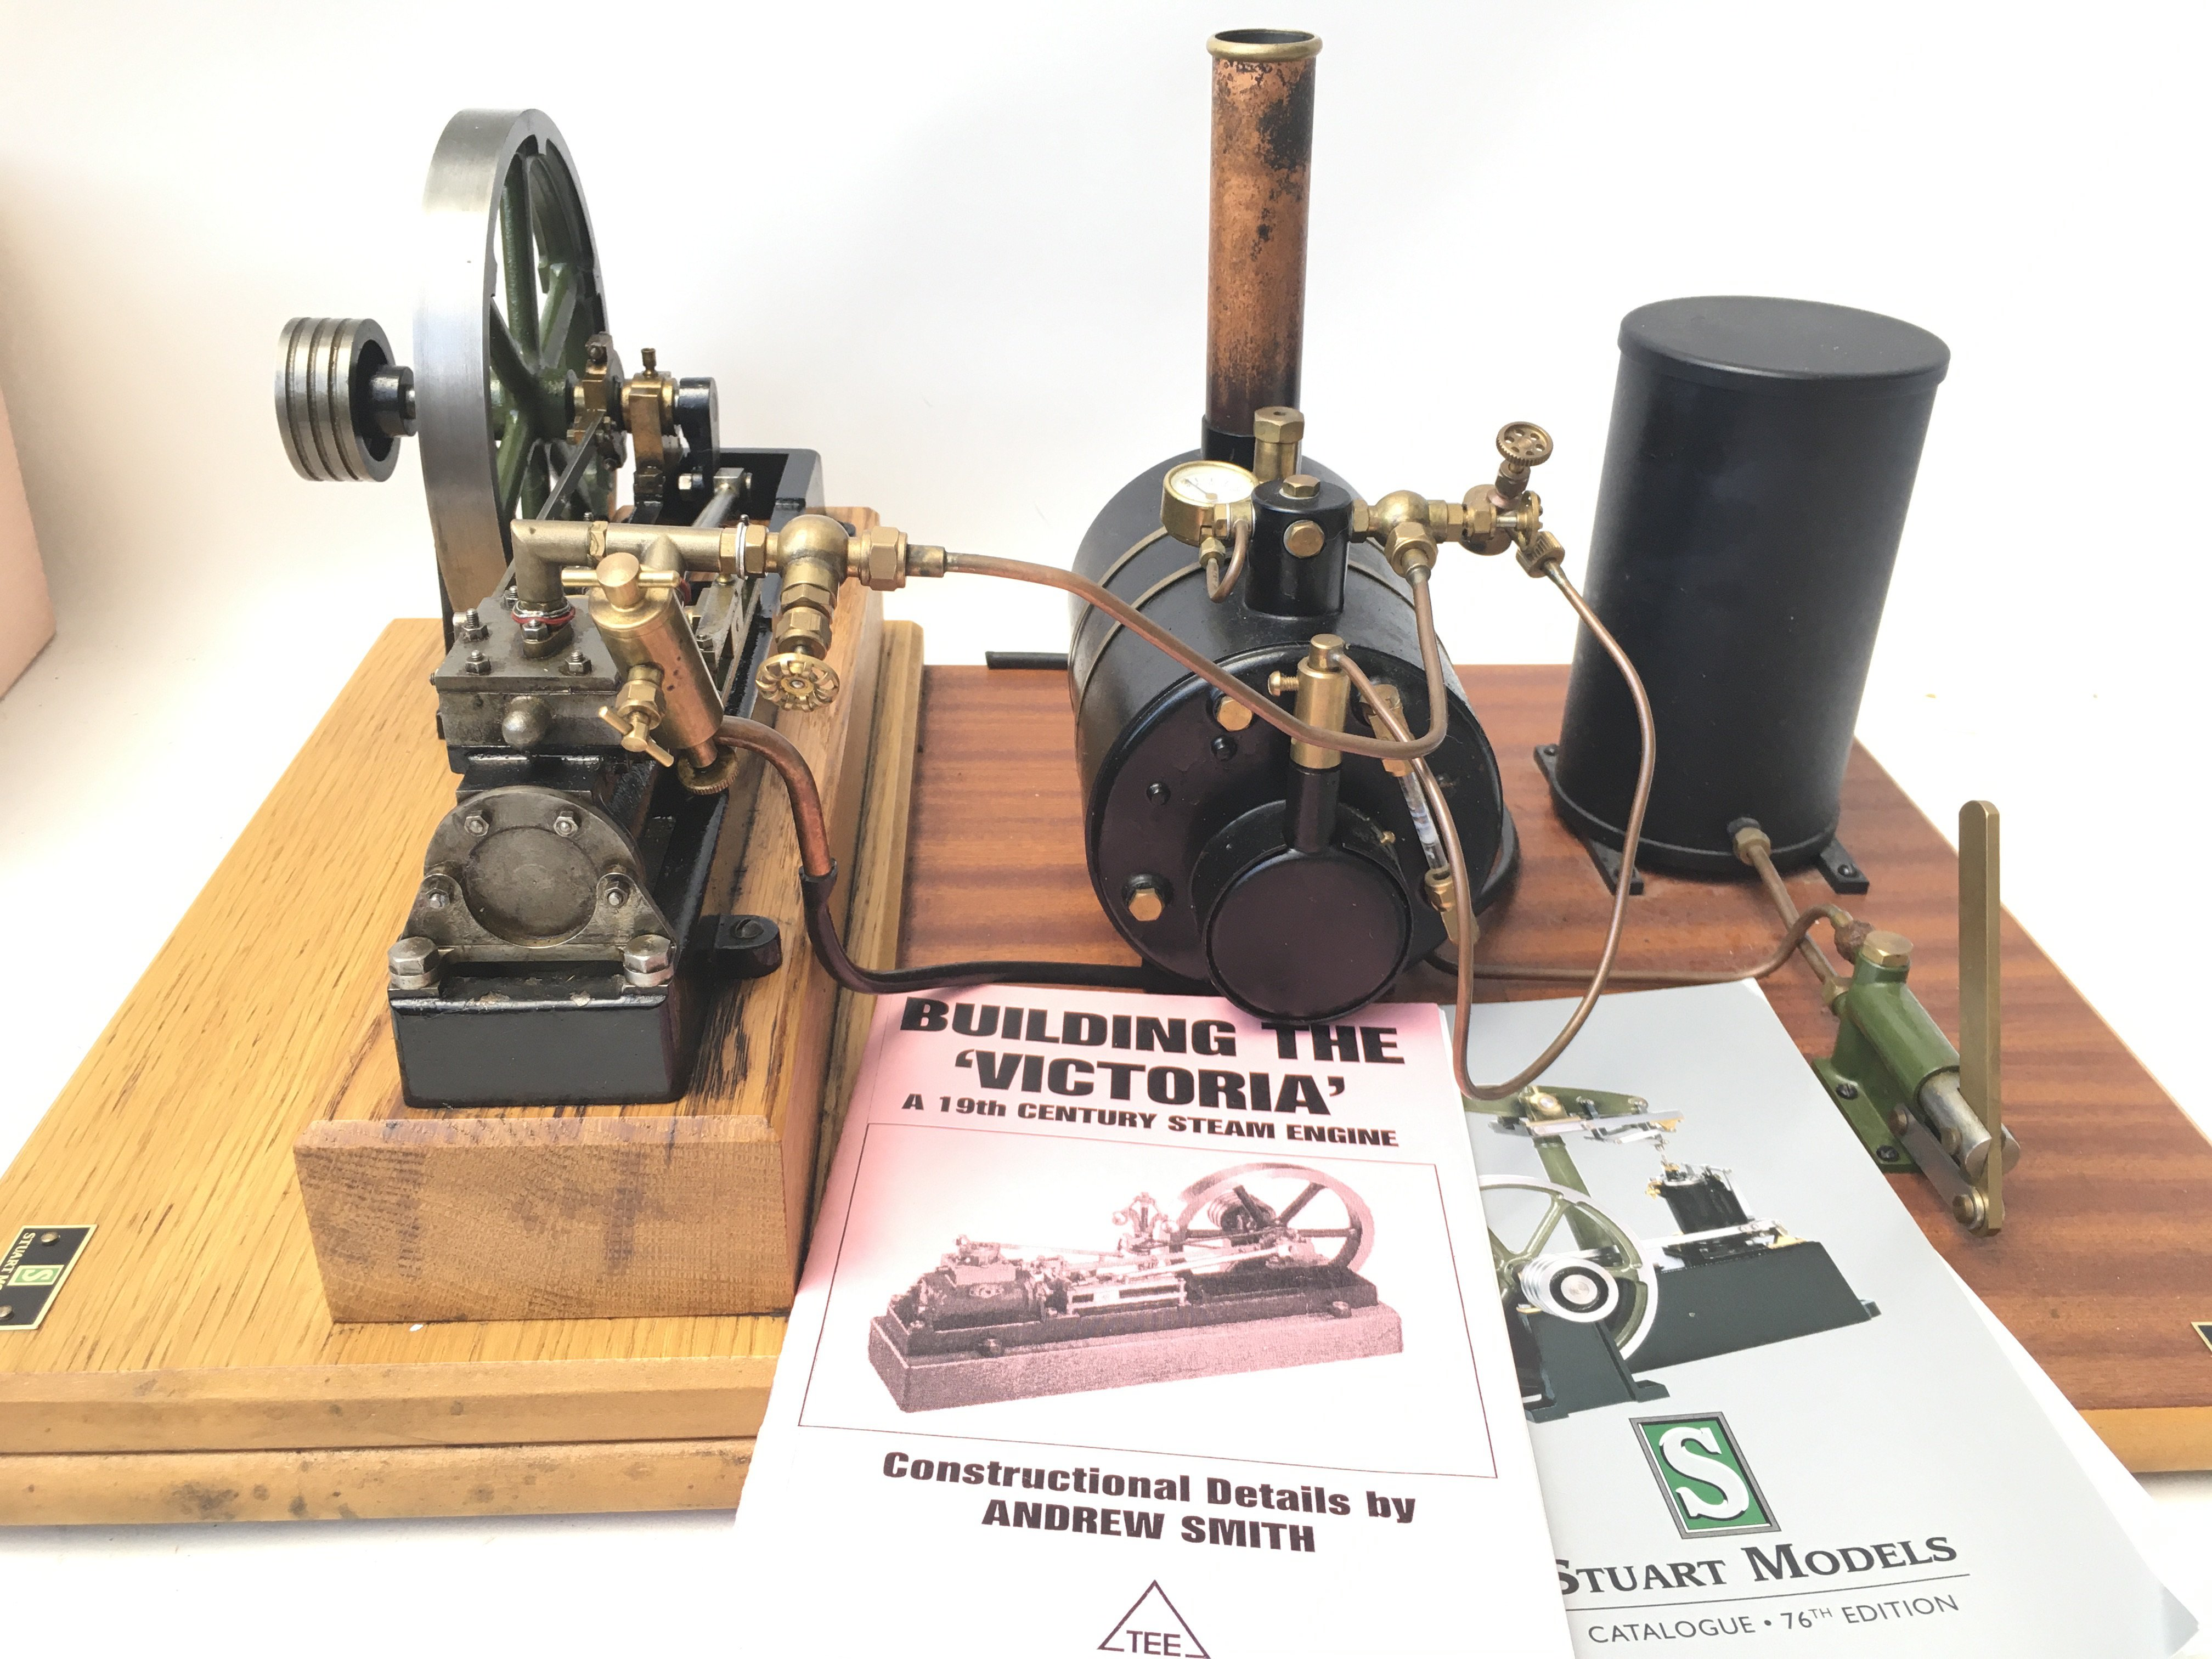 A Stuart Models Steam Engine including Feed Pump & Reservoir. Includes oils and certificate of - Image 2 of 5